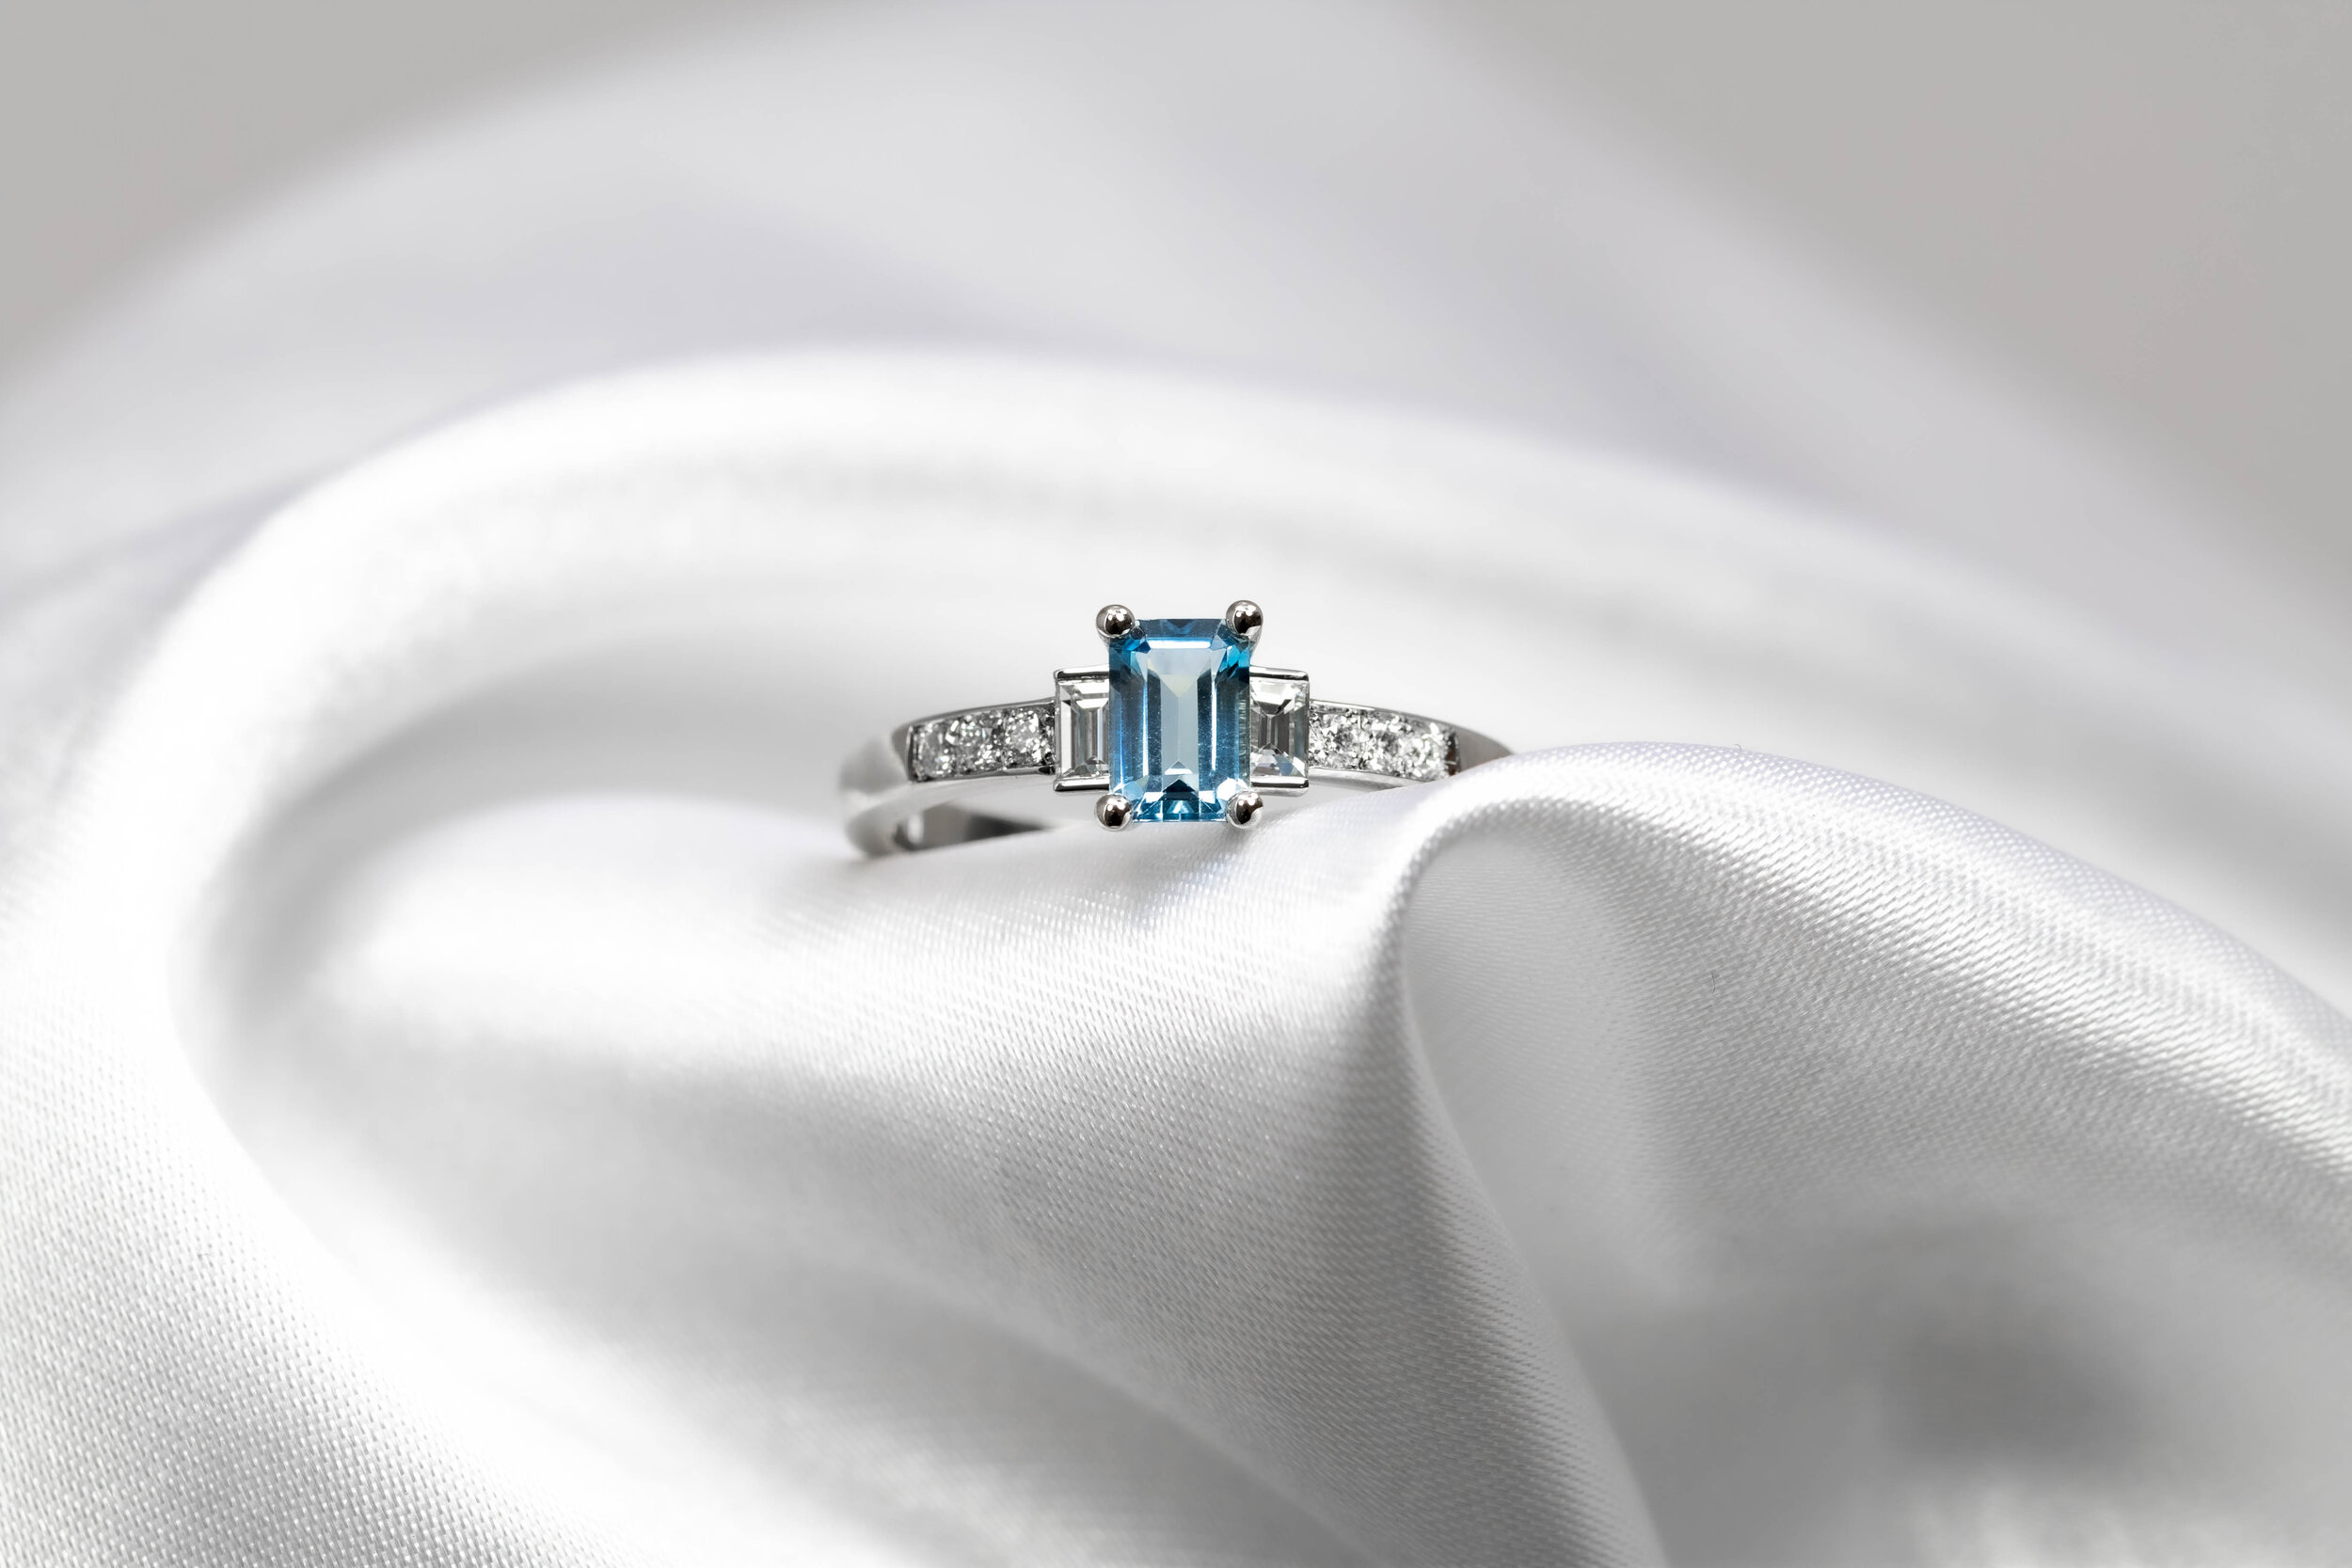 Platinum mounted emerald cut aquamarine, with baguette and round cut diamond set ring. Made in Chichester, England.